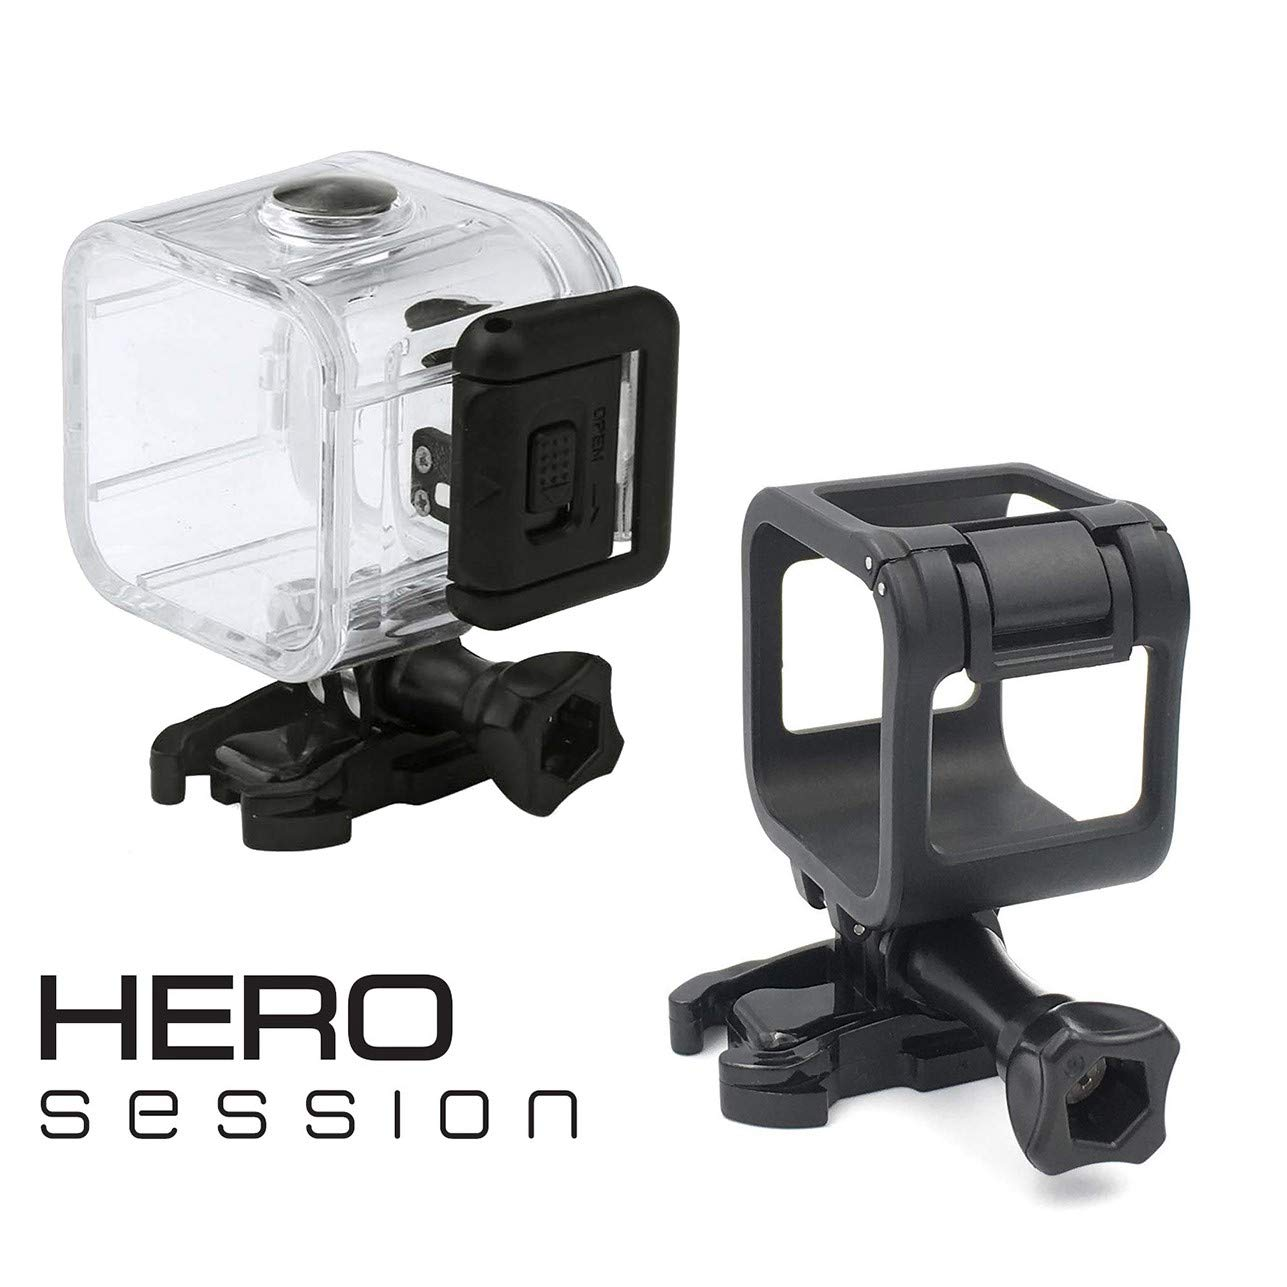 RAXPY Combination of Waterproof Housing Plus a Frame for GoPro Session Black, The housing is a Protective Hard case for Underwater Photography up to 40M by Raxpy